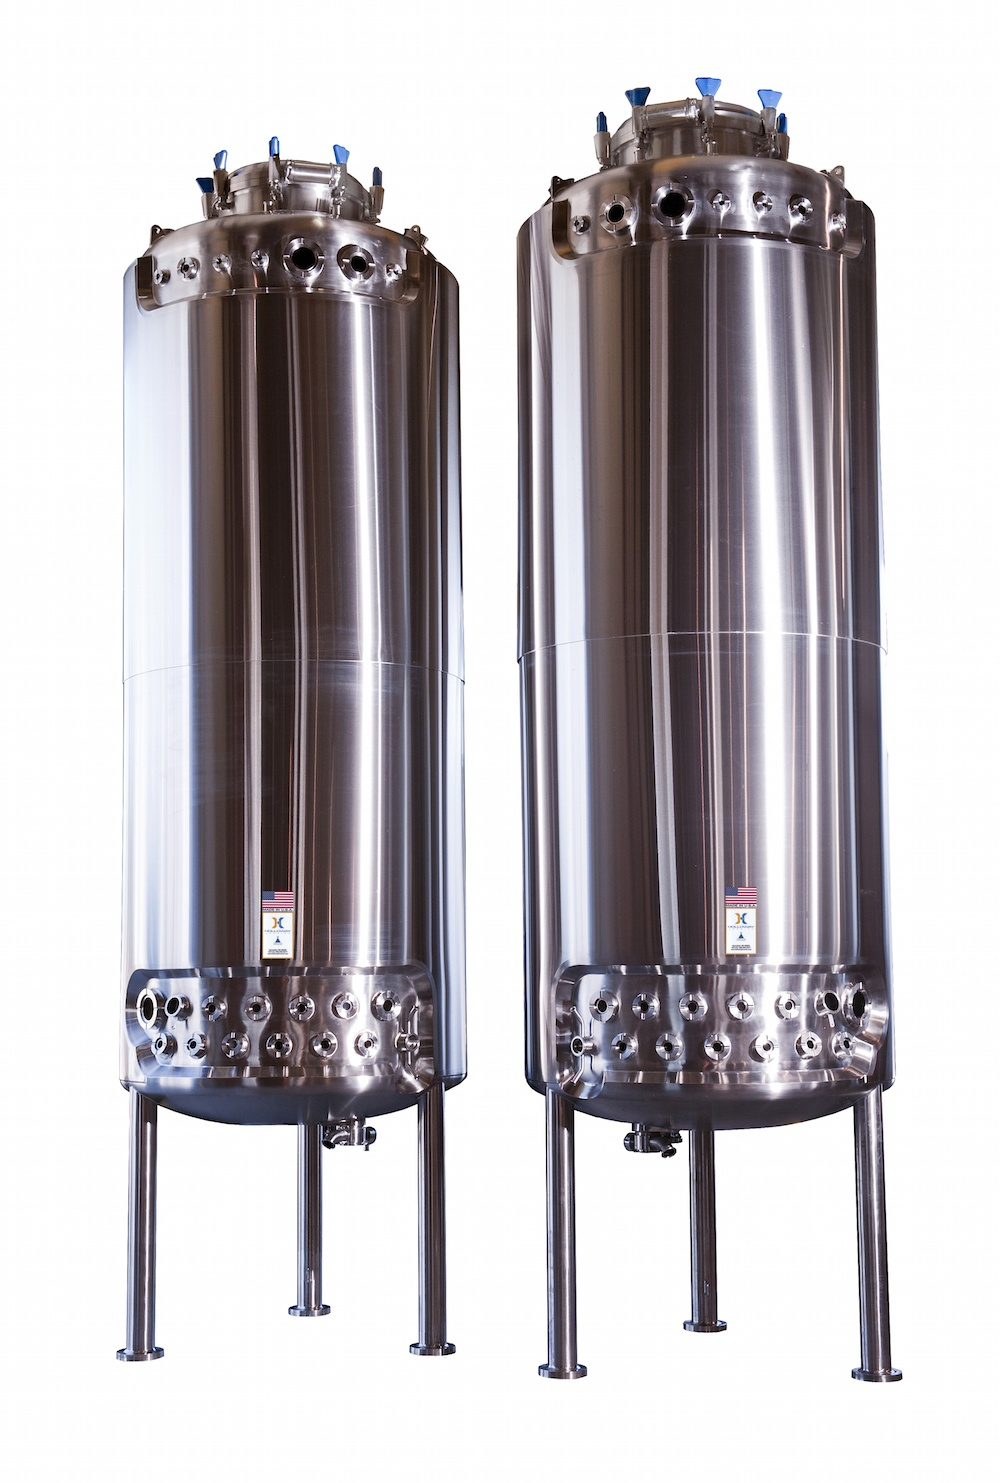 HOLLOWAY proudly produces pharmaceutical stainless steel solutions like these bioreactors.